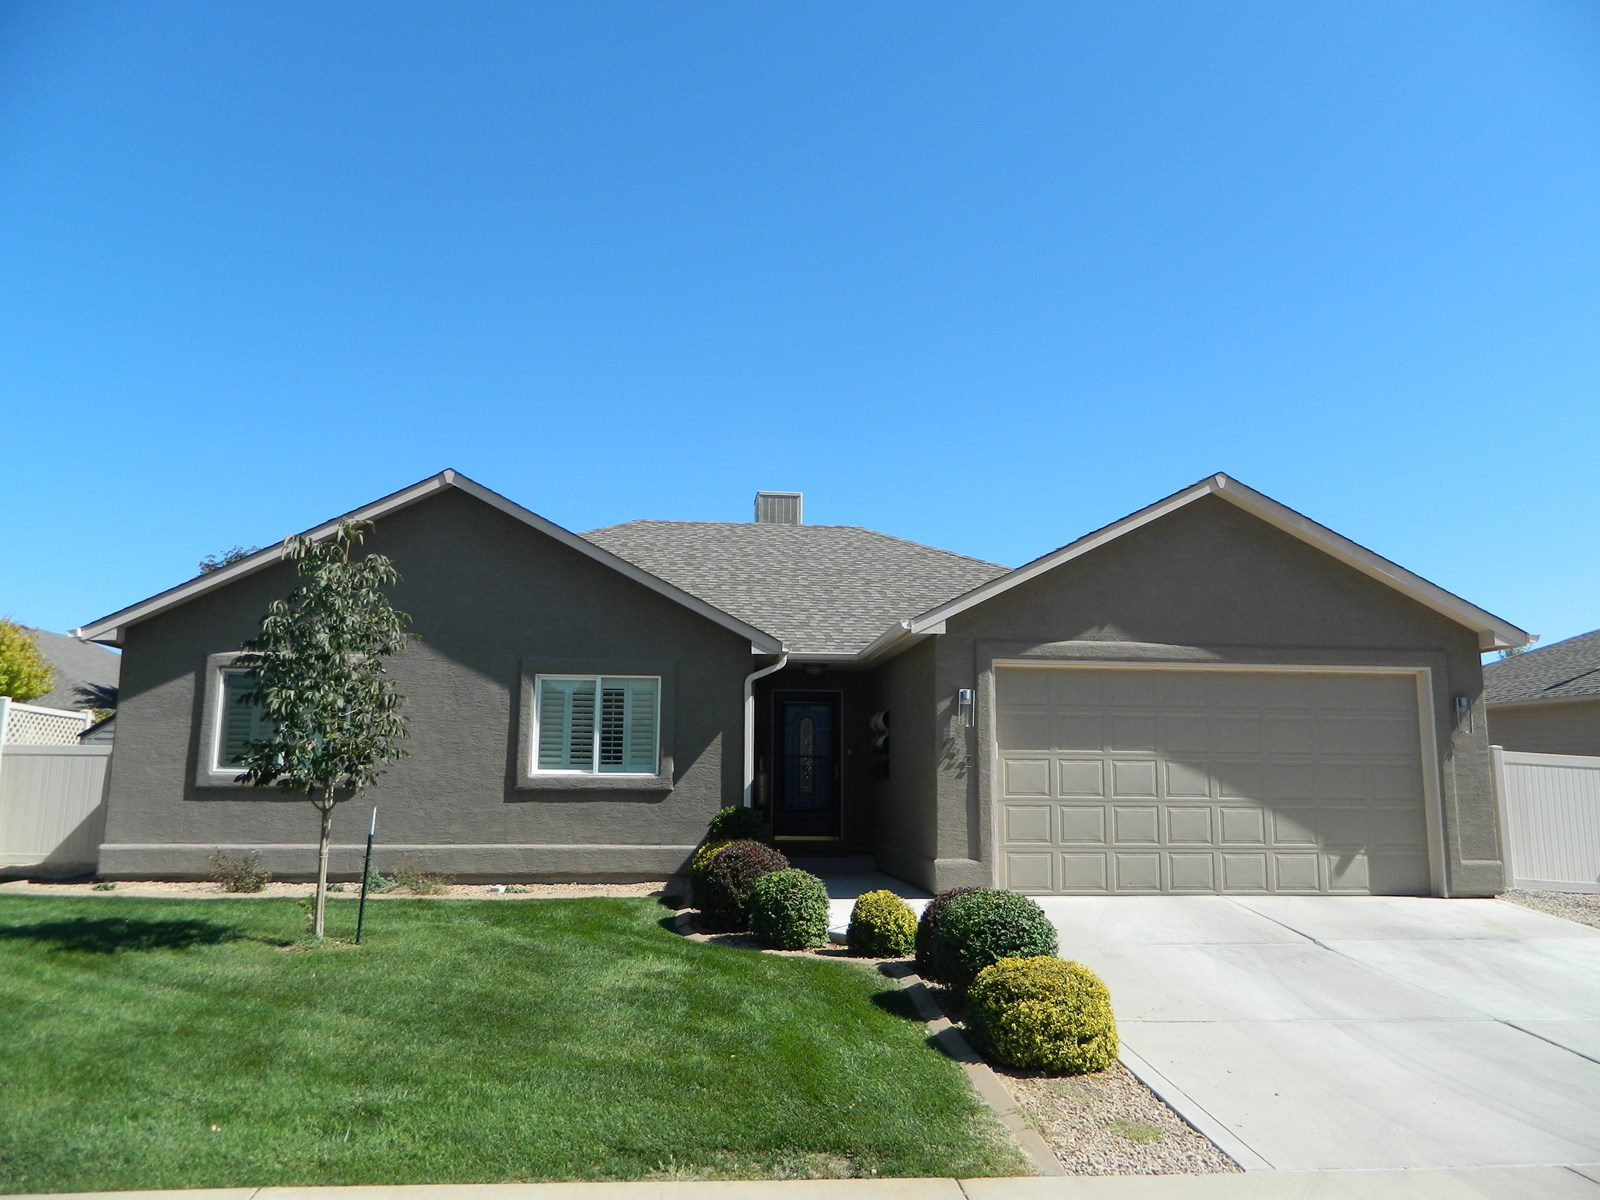 Newly Remodeled Home for Sale in Grand Junction, CO